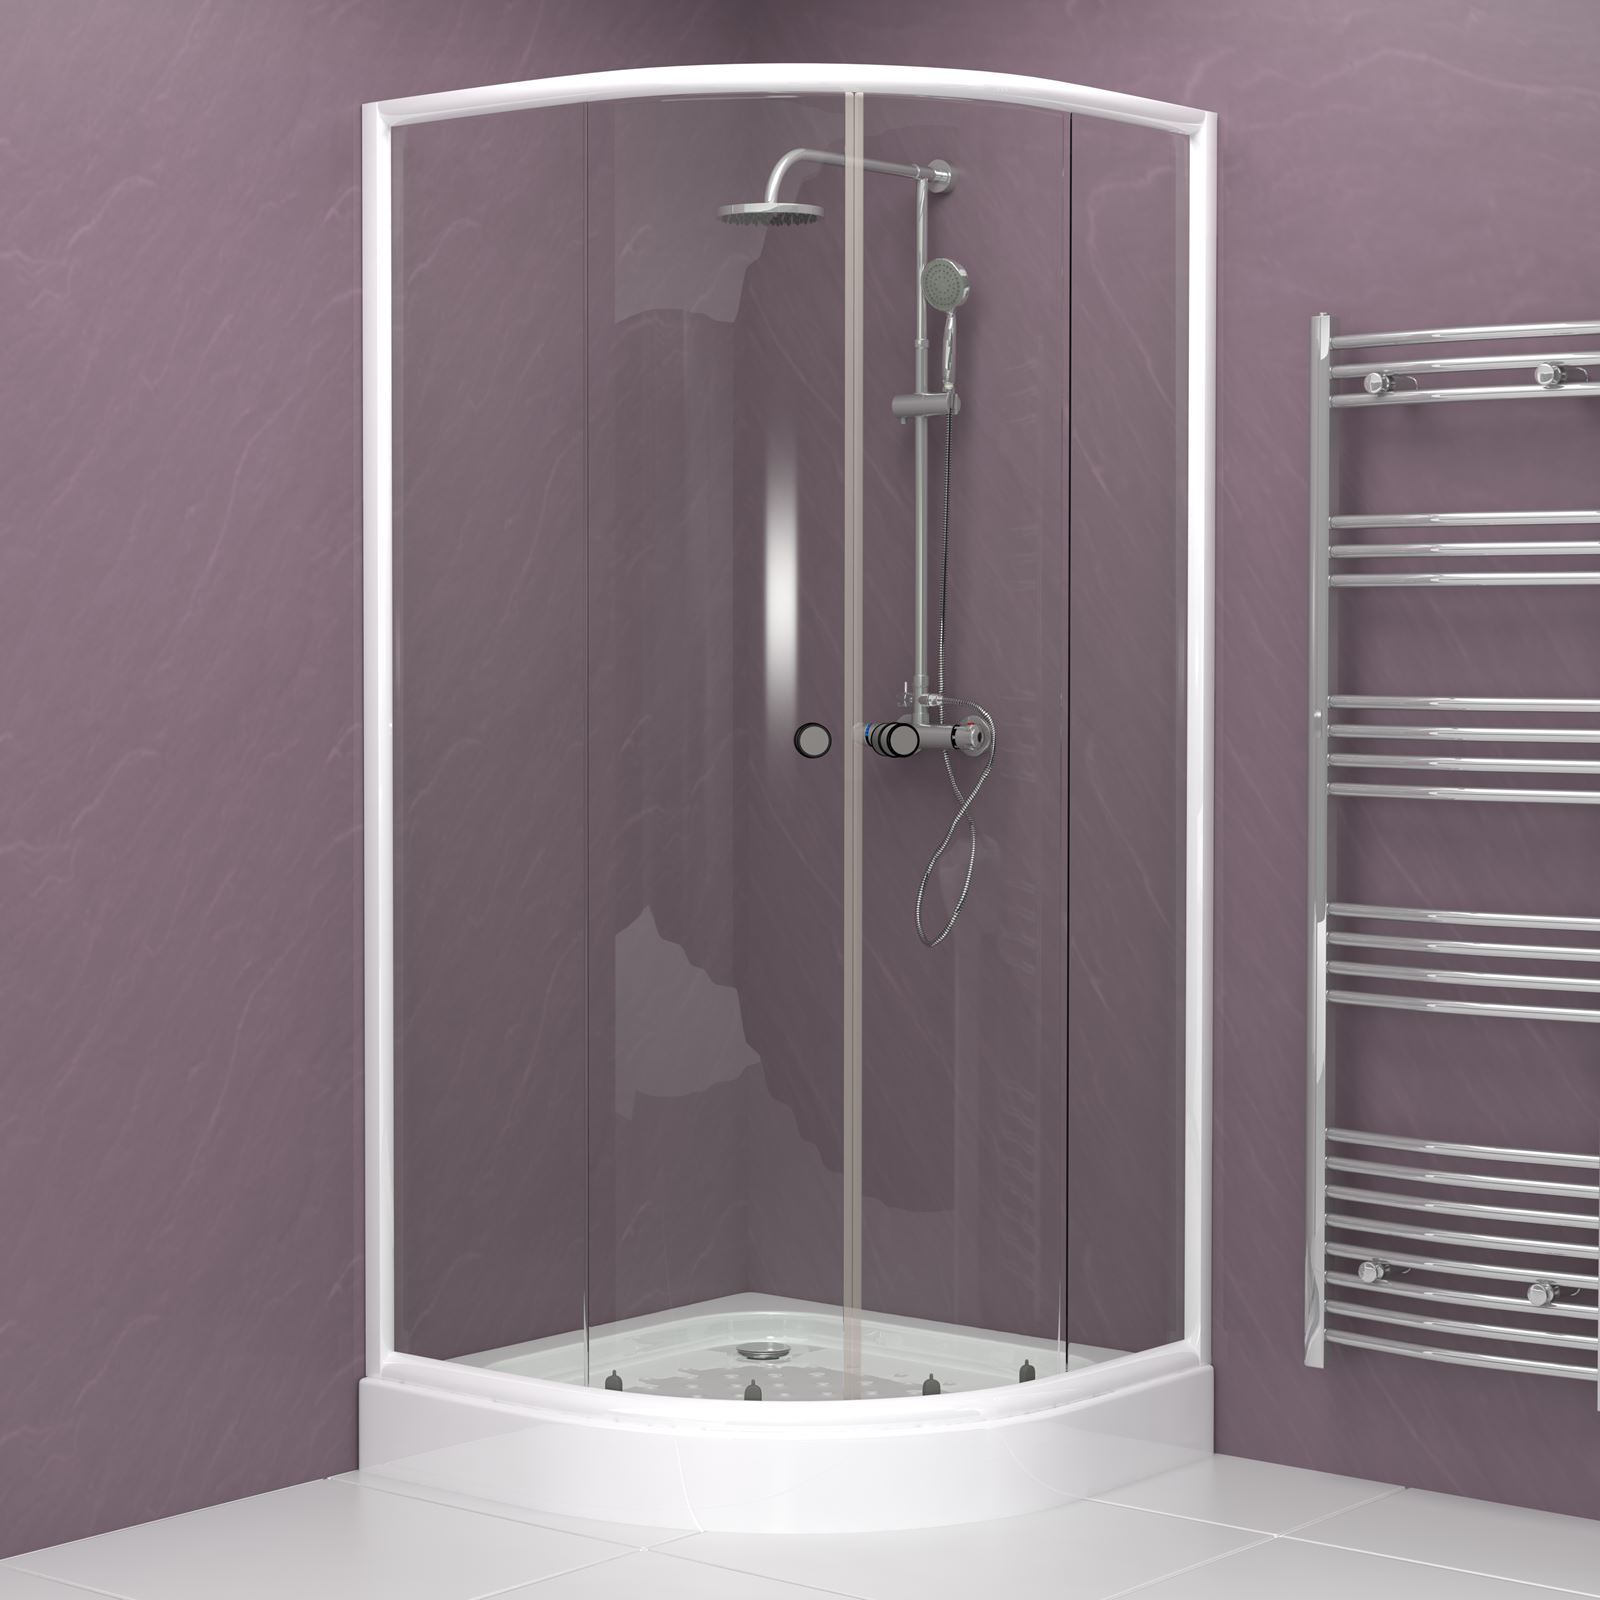 800 900 Modern Quadrant Shower Enclosure Corner Cubicle